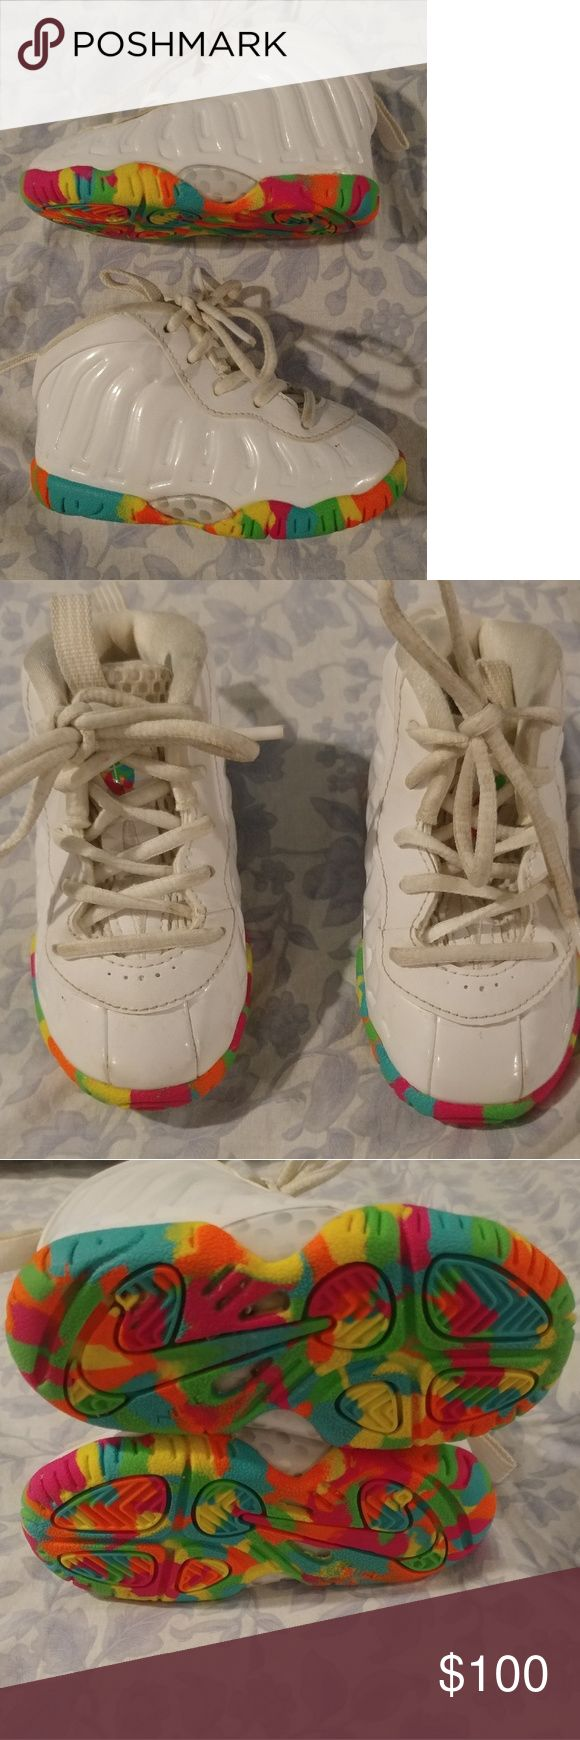 👟 Fruity Pebbles foamposites Nike sz 5c Rare⚡💍White Fruity pebble foamposites in good condition. I do have the box . Nike Shoes Sneakers